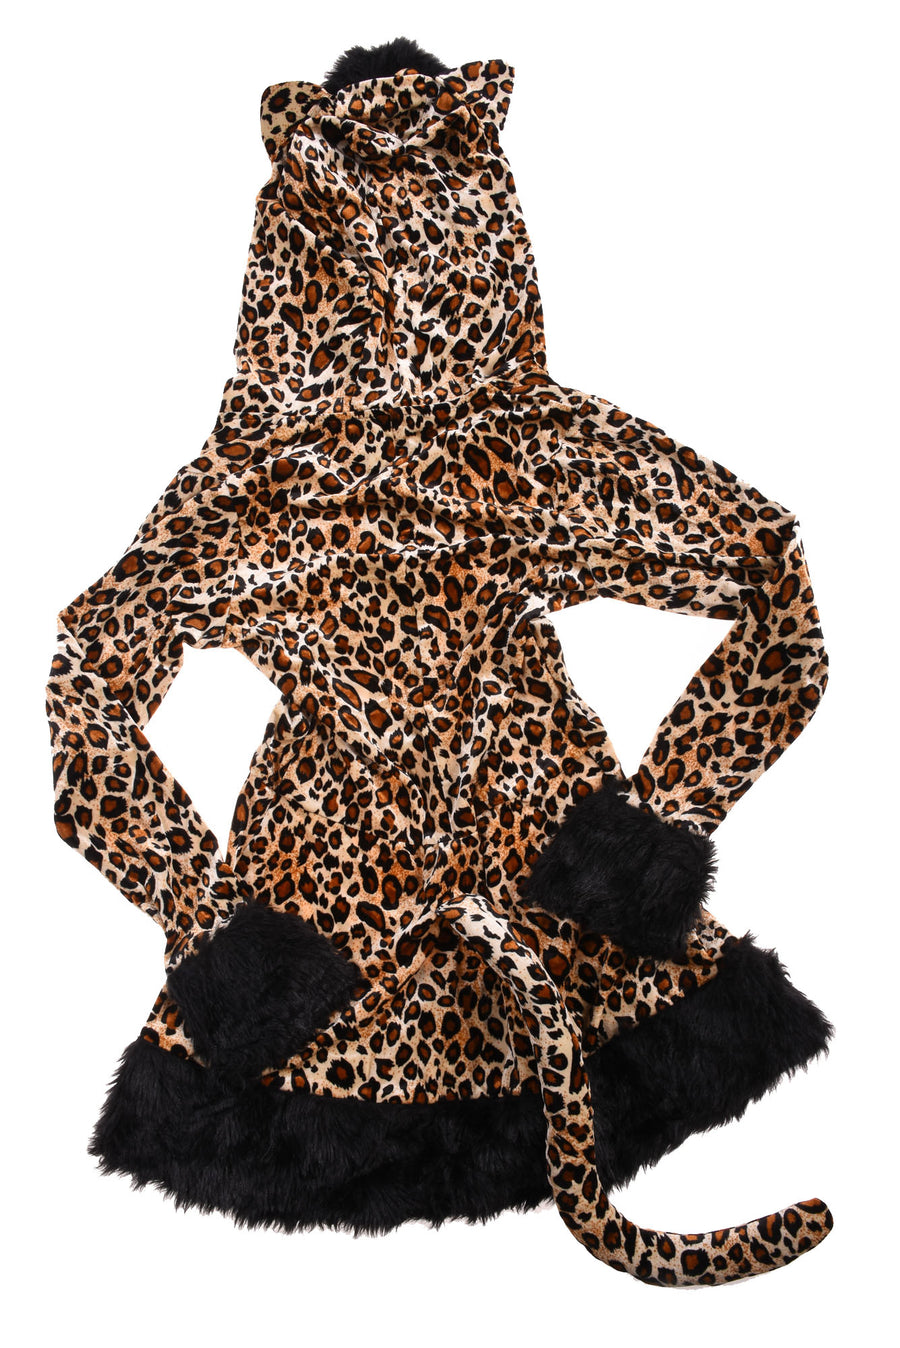 USED No Brand Women's/Juniors Cat Halloween Costume 2-4 Brown & Black